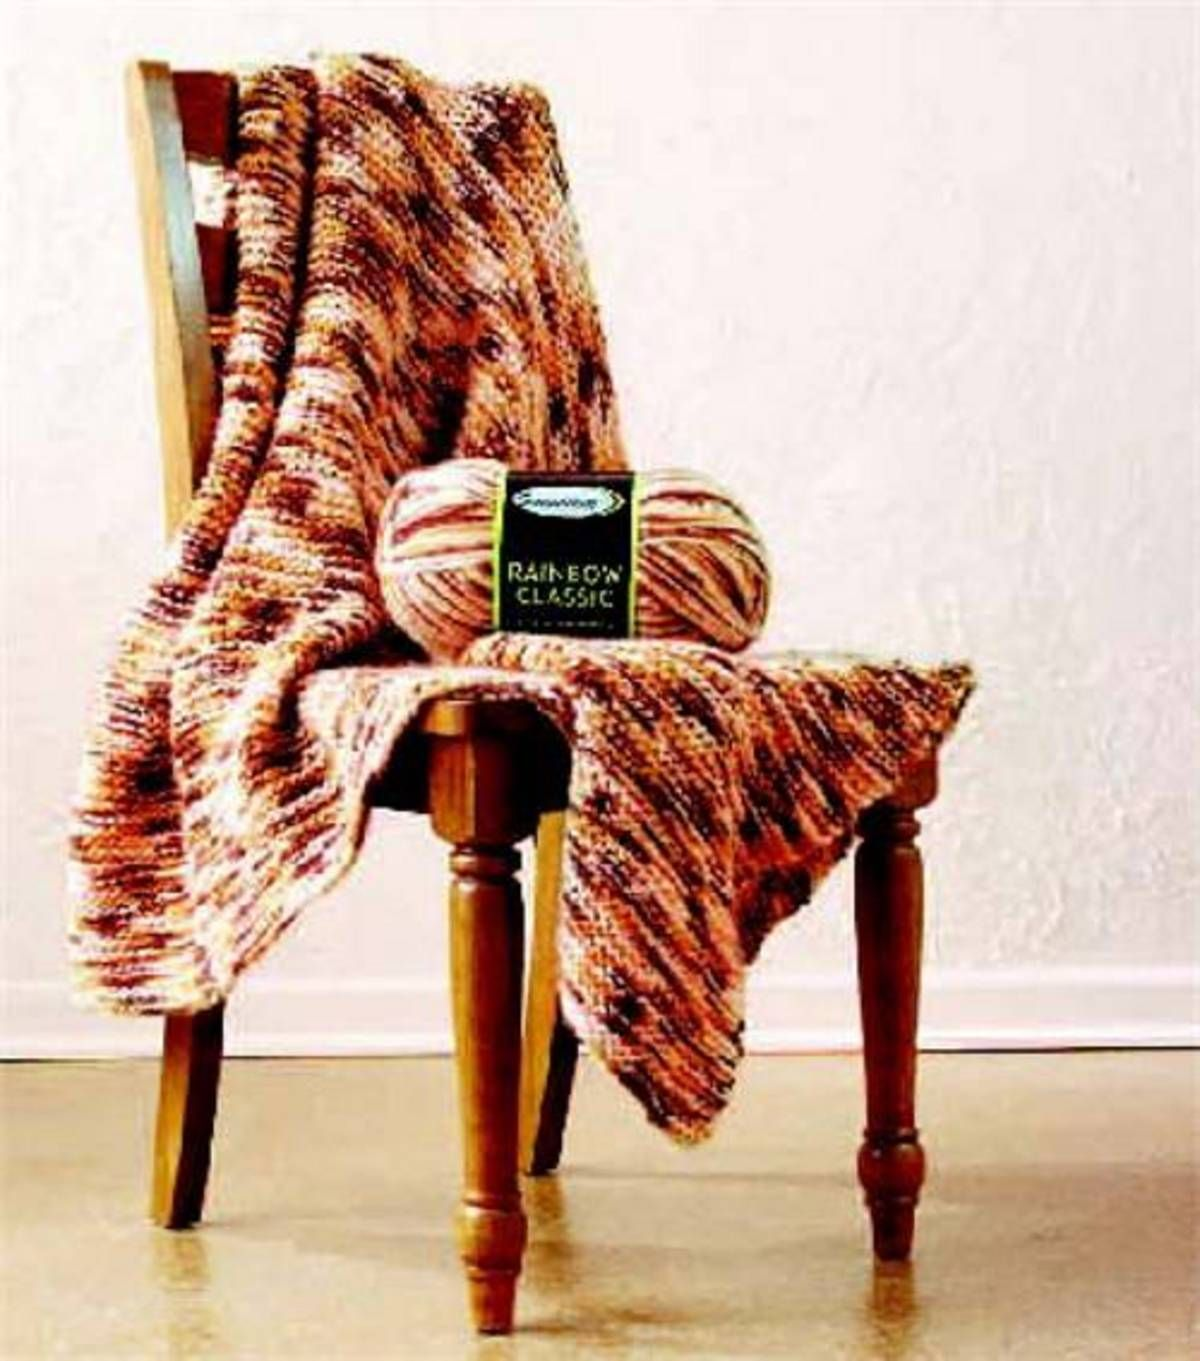 Knit Blanket Pattern Size 13 Needles : Easy-to-Knit Afghan:Knitting needles, size 13   Sensations ...